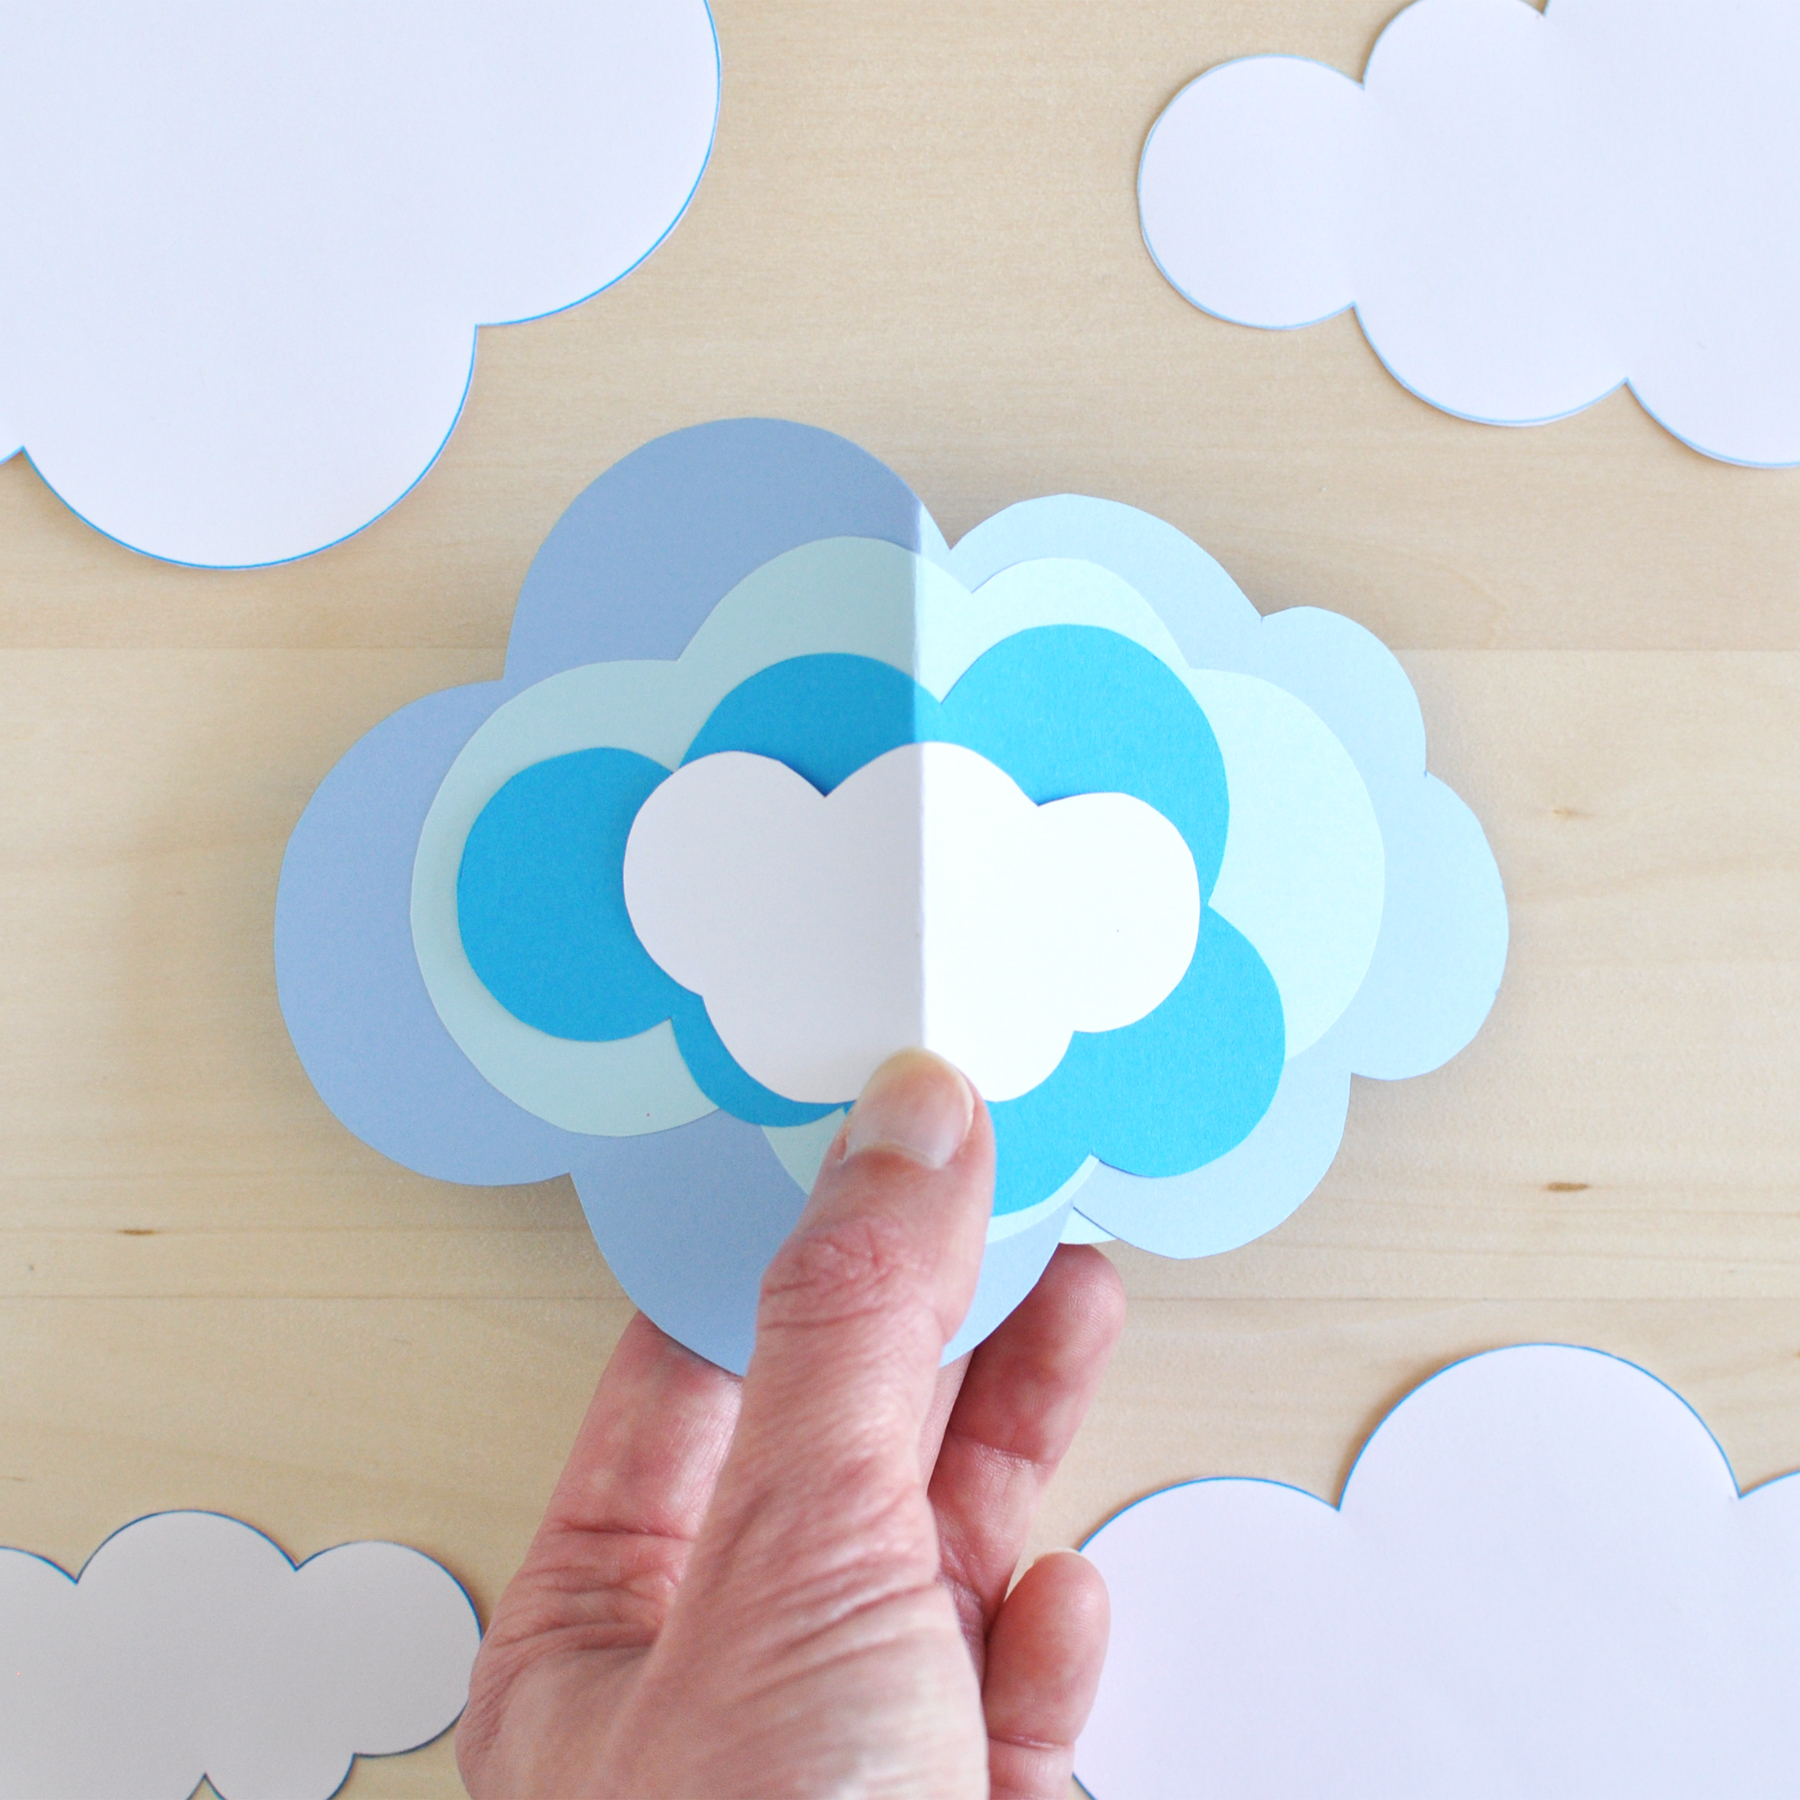 Make-Your-Own-Mini-Cloud-Journal---Image6.jpg